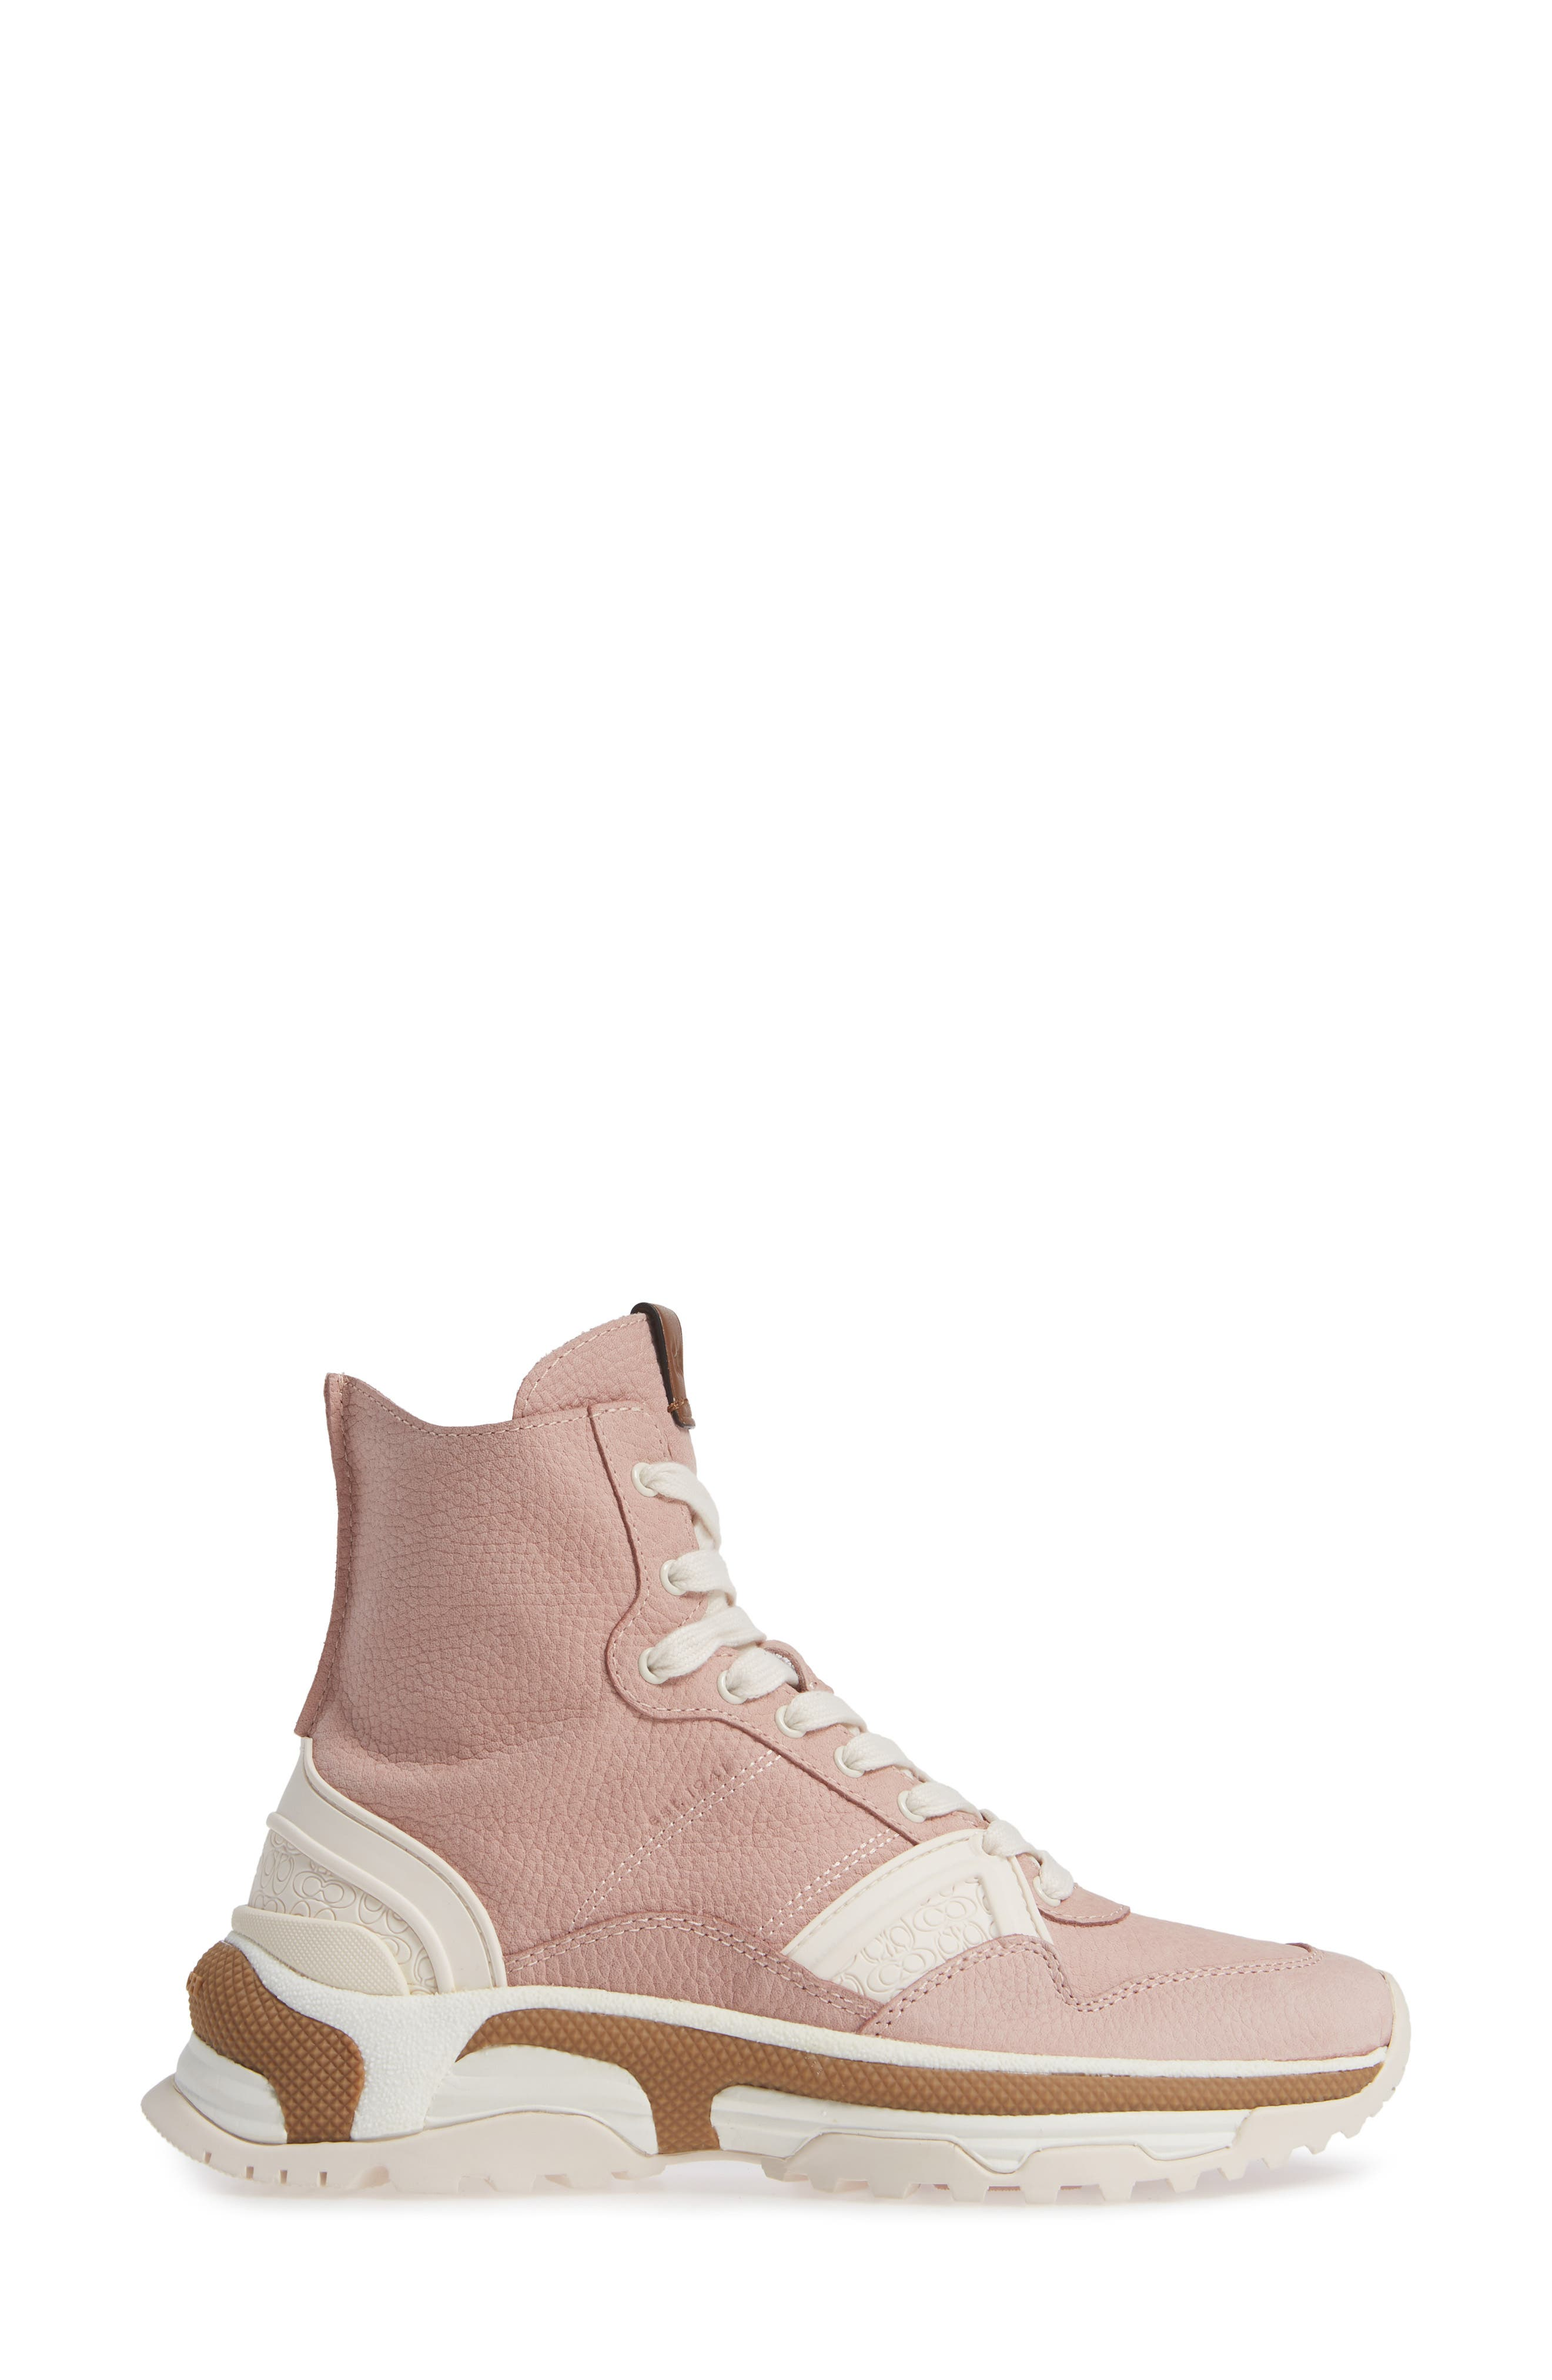 COACH,                             High Top Sneaker,                             Alternate thumbnail 3, color,                             BLUSH PINK NUBUCK LEATHER